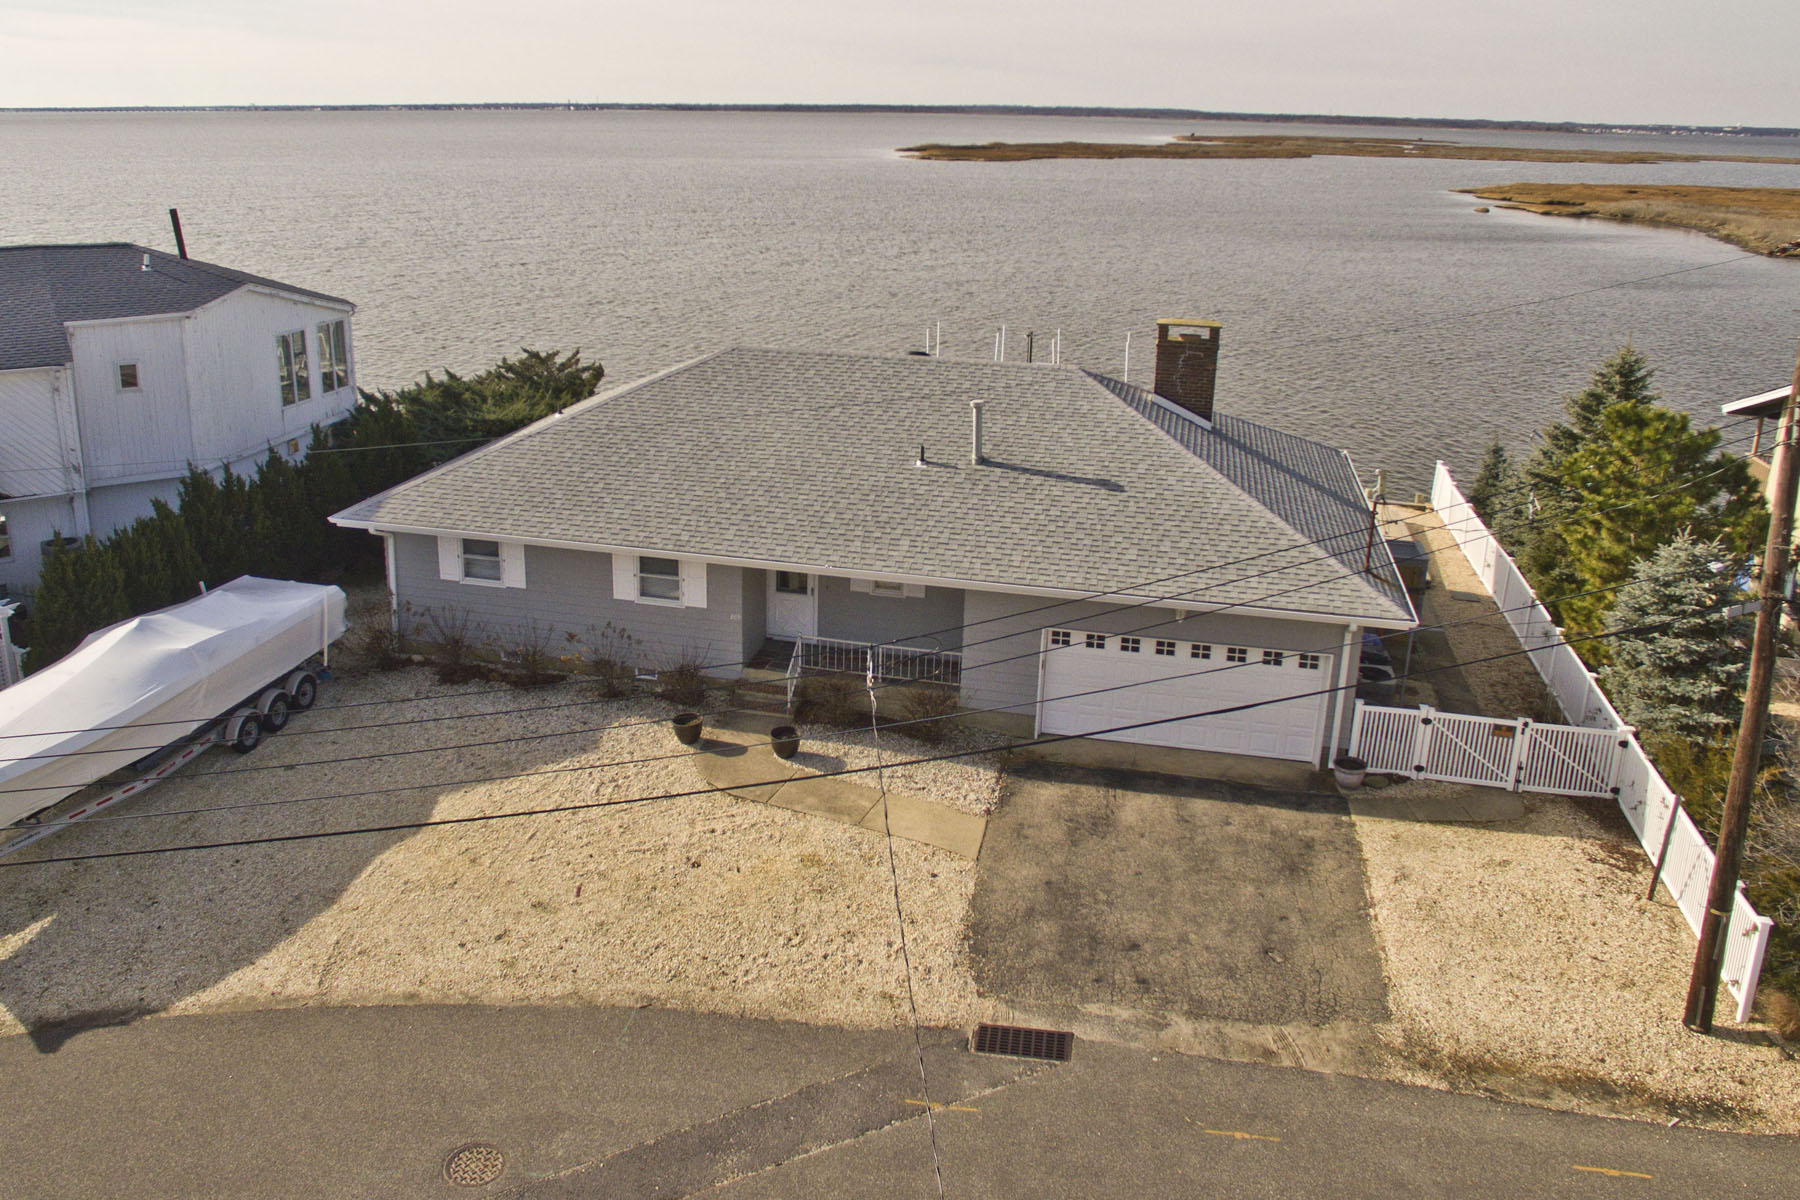 Maison unifamiliale pour l Vente à One-Of-A-Kind Location 369 Lauderdale Drive Lavallette, New Jersey 08735 États-Unis